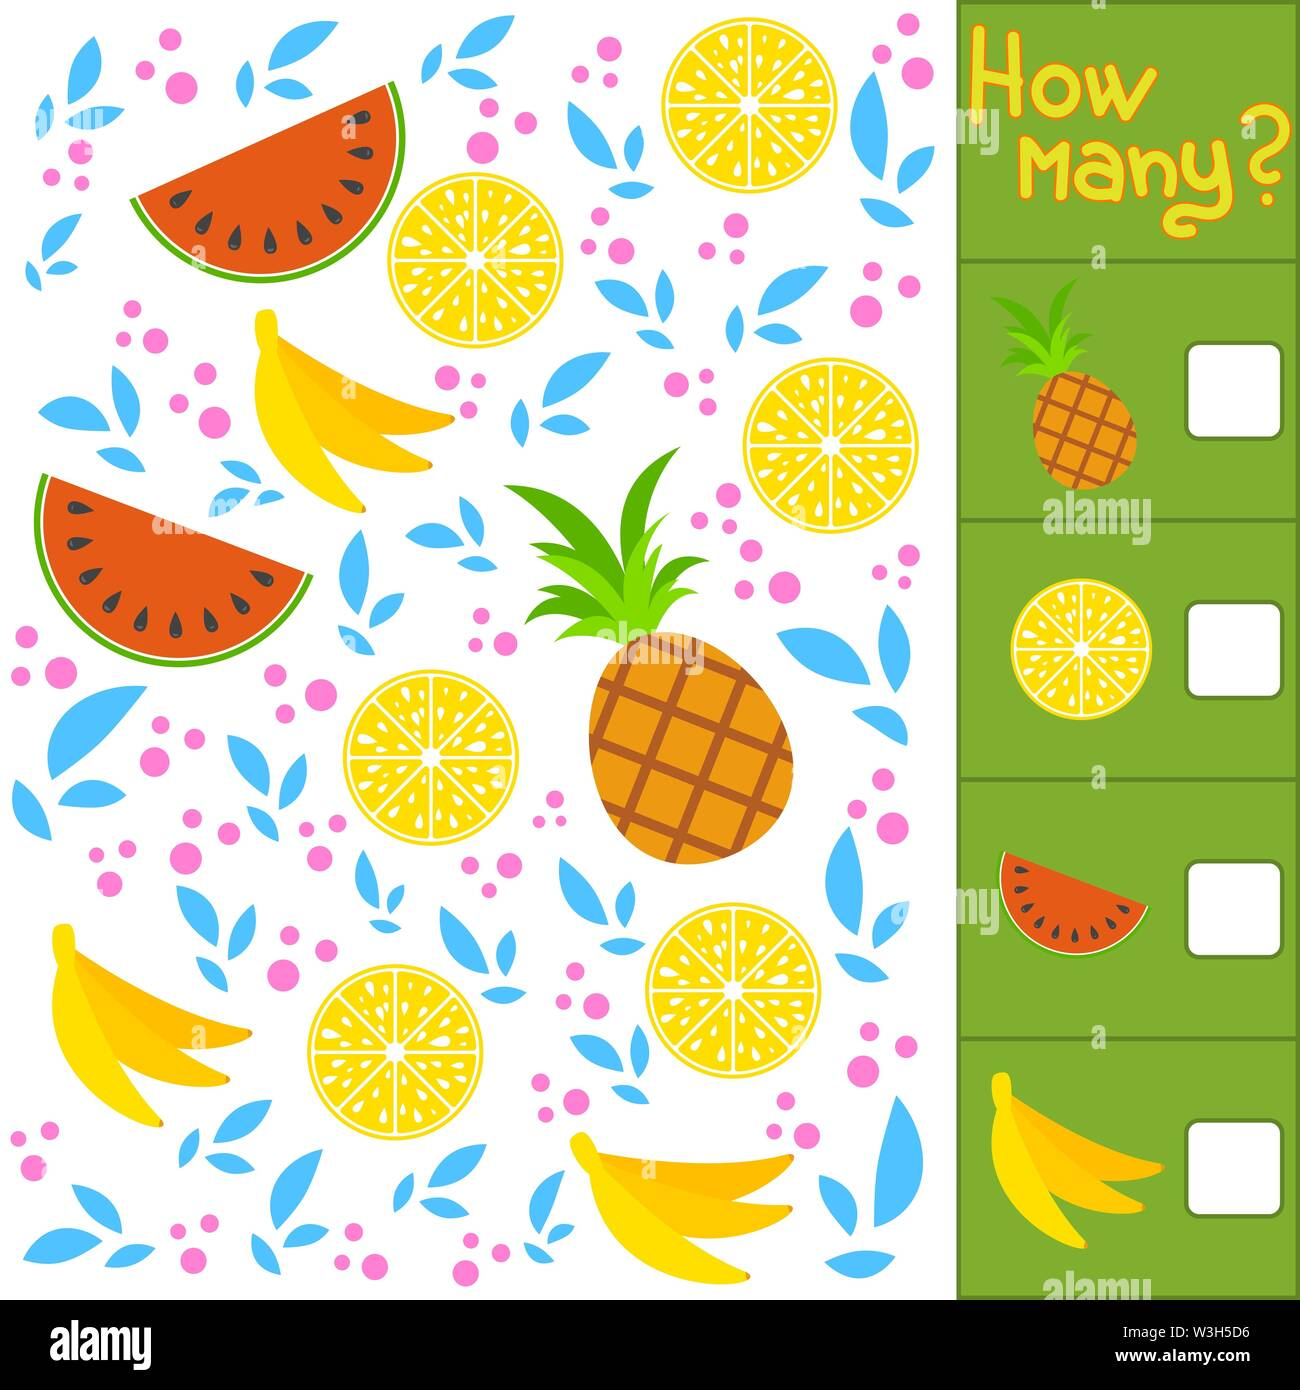 Game for preschool children. Count as many fruits in the picture, write down the result. Banana, watermelon, lemon, pineapple. With a place for answer Stock Vector